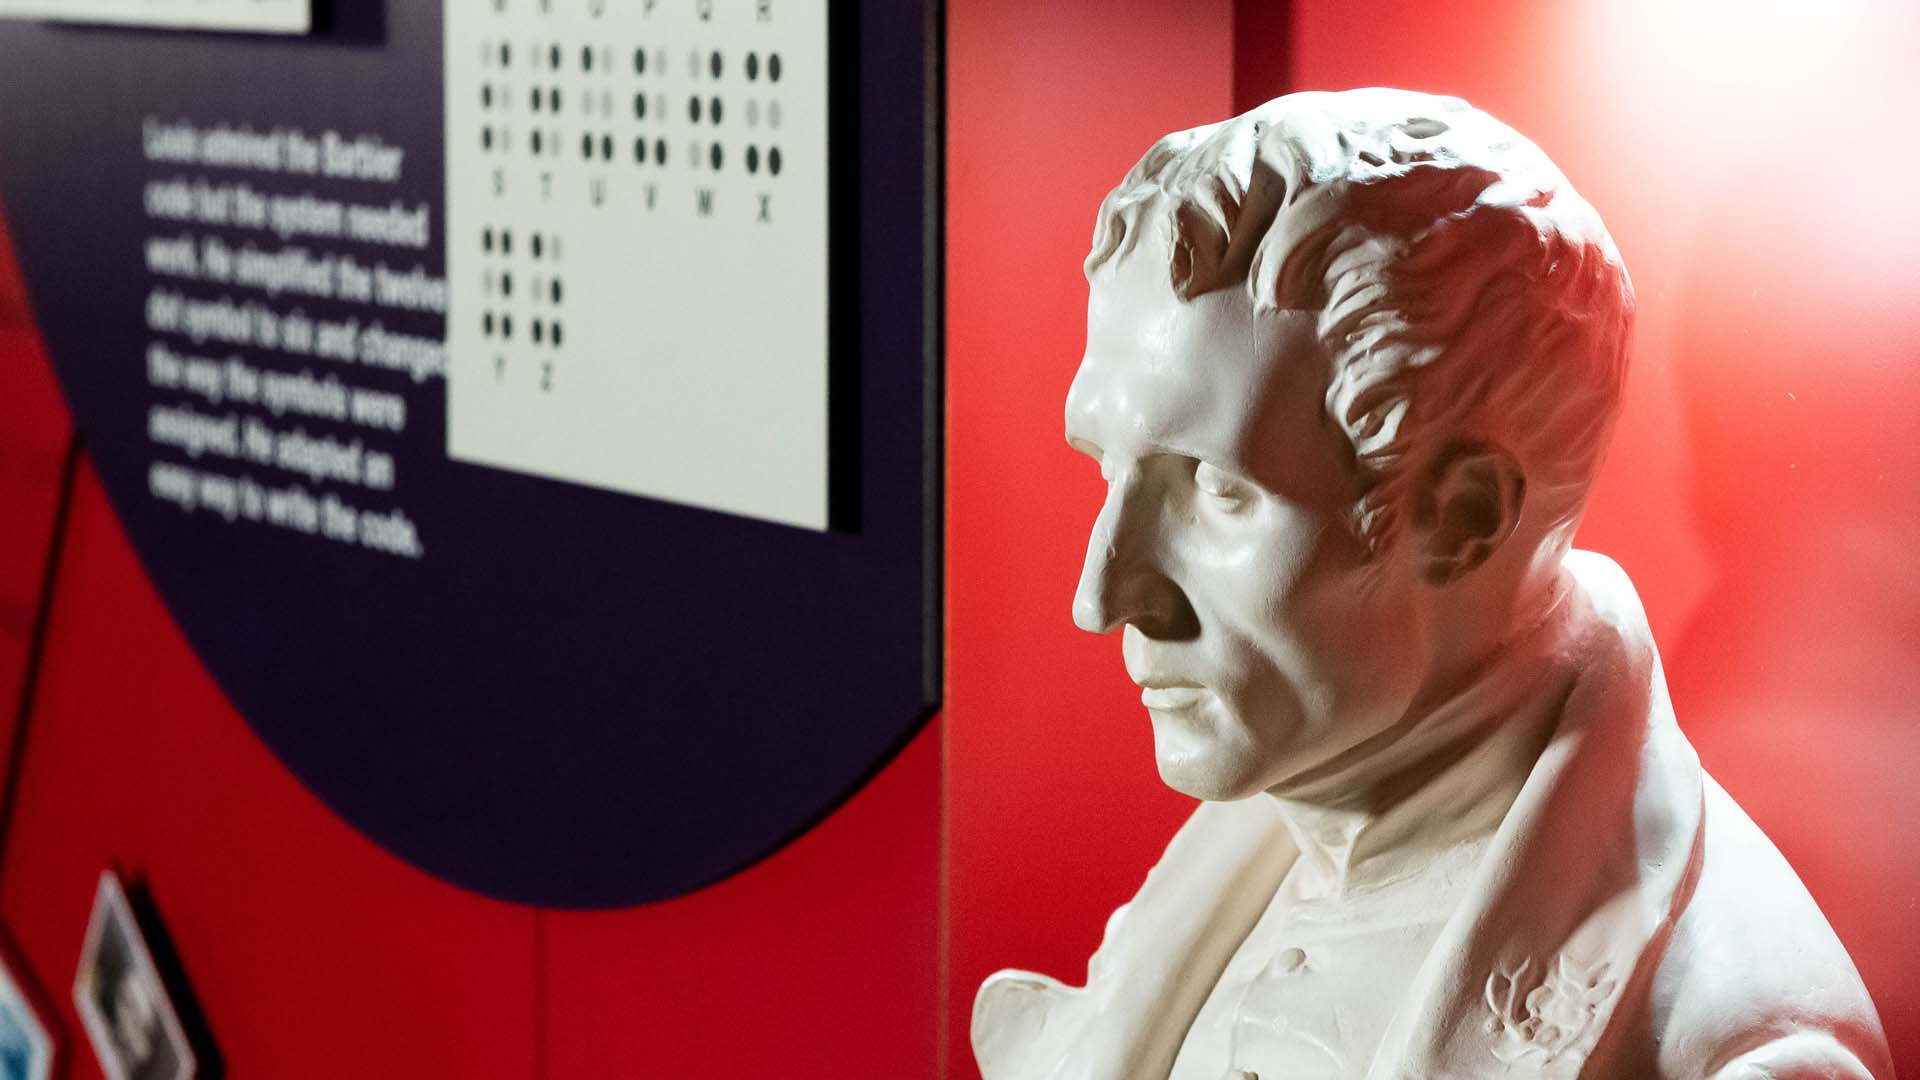 A white plaster bust of Louis Braille beside a museum exhibit wall explaining the braille system